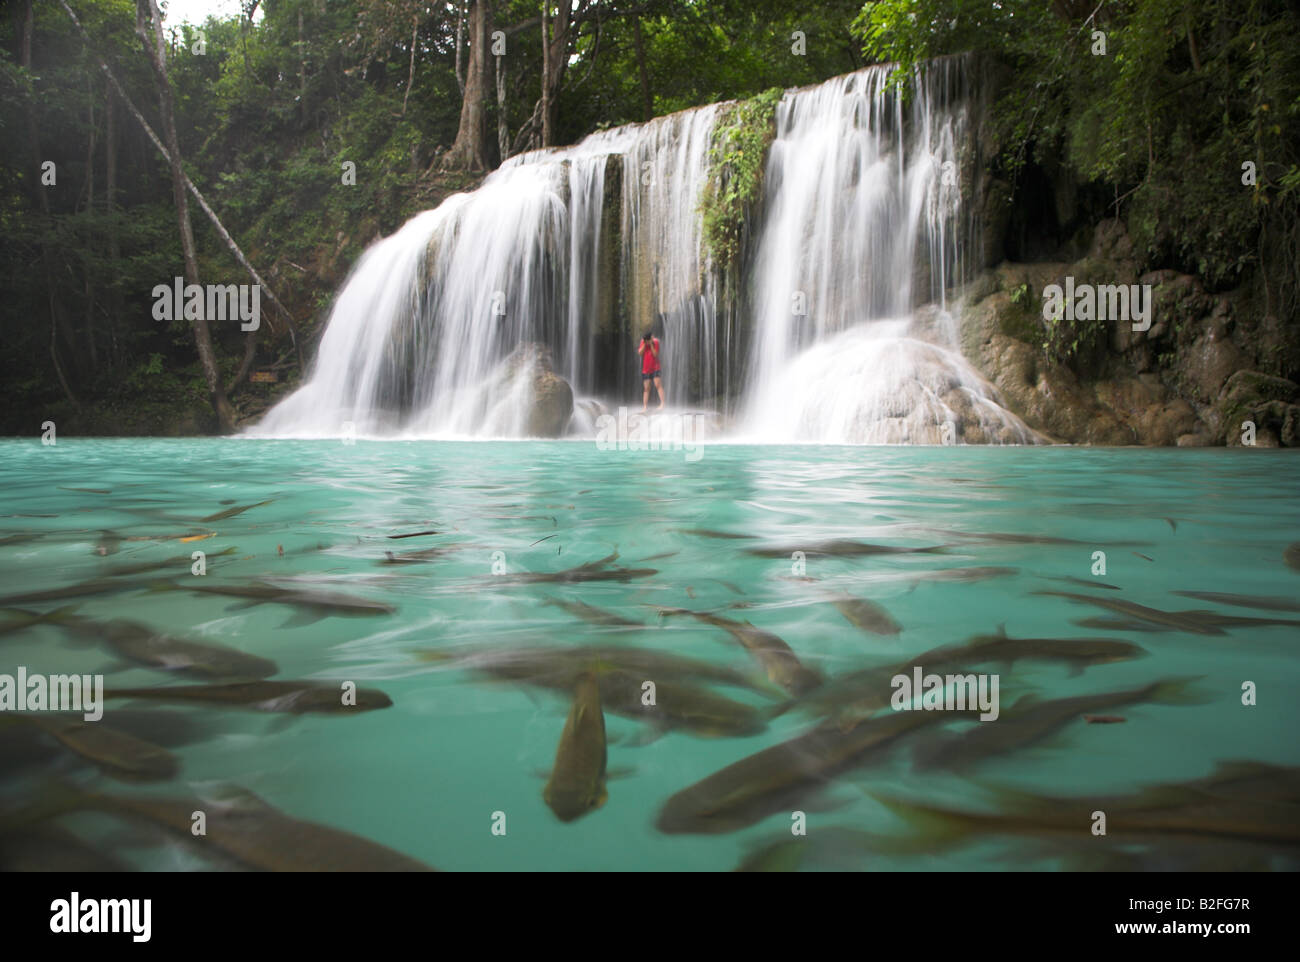 Niagara Falls Live Wallpaper Large Fish Swim Around A Waterfall At The Erawan Falls In